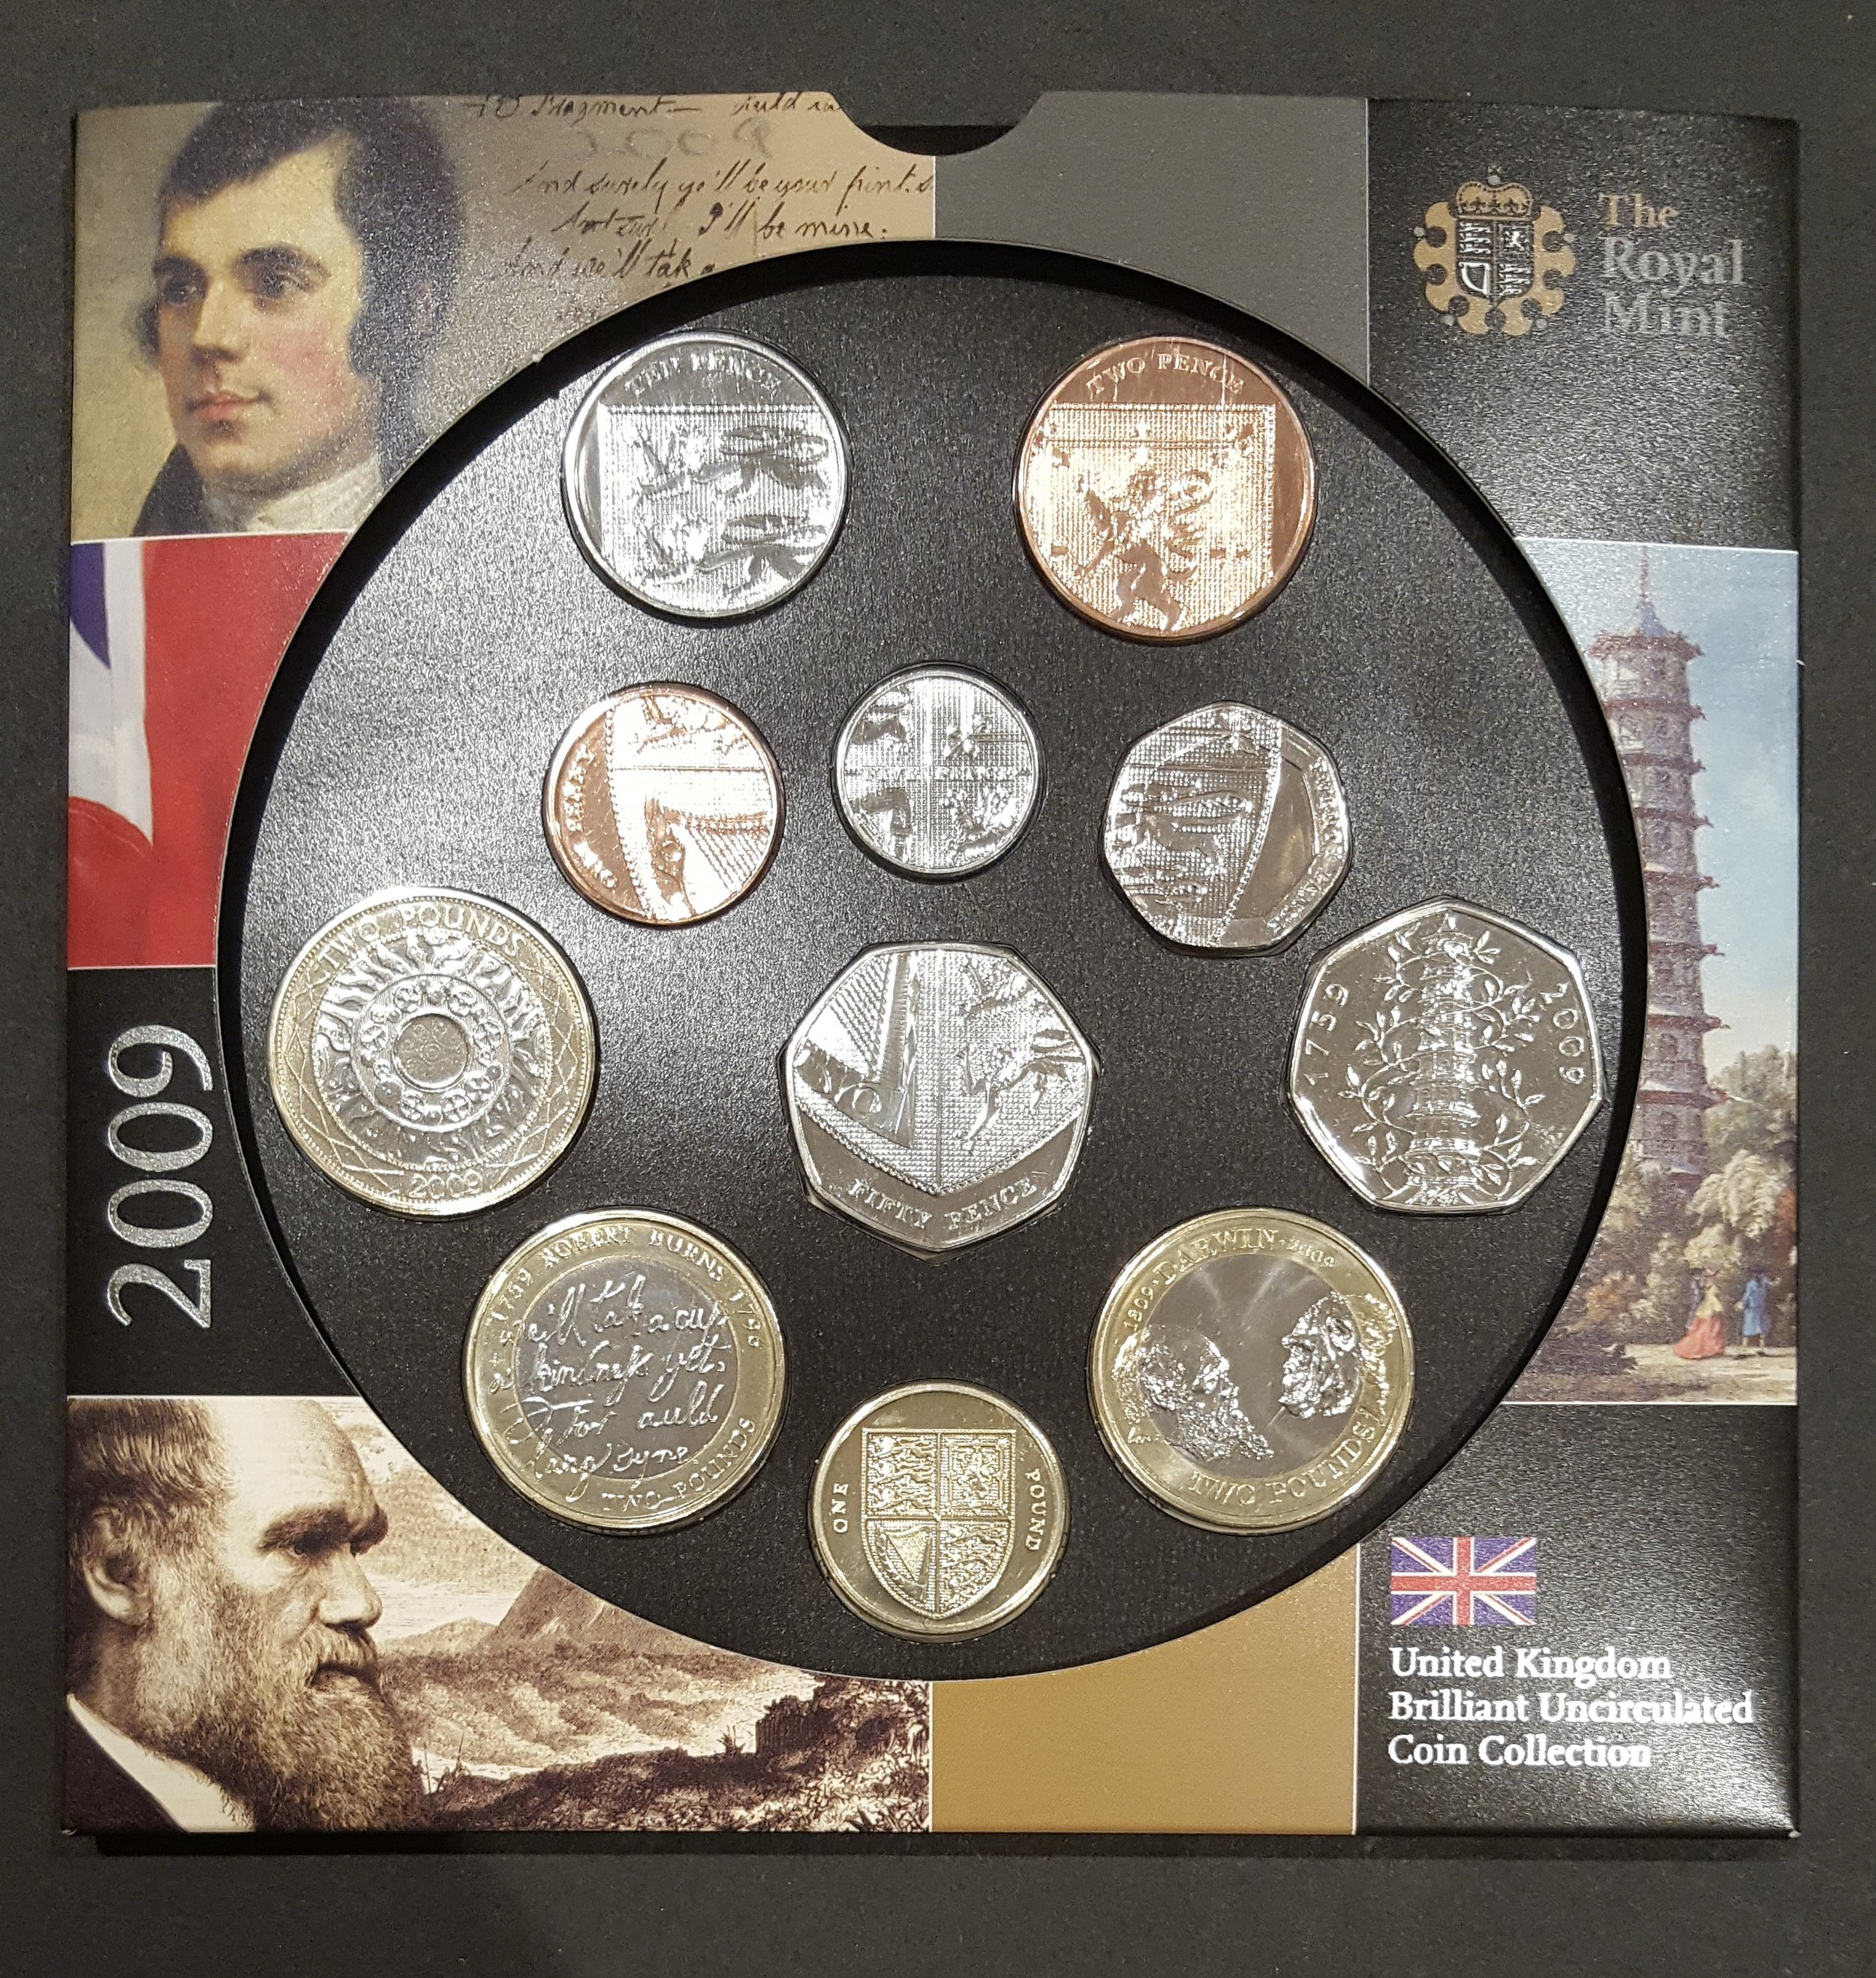 Royal Mint UK Brilliant Uncirculated Coin Set 2009 - Kew Gardens 50p.